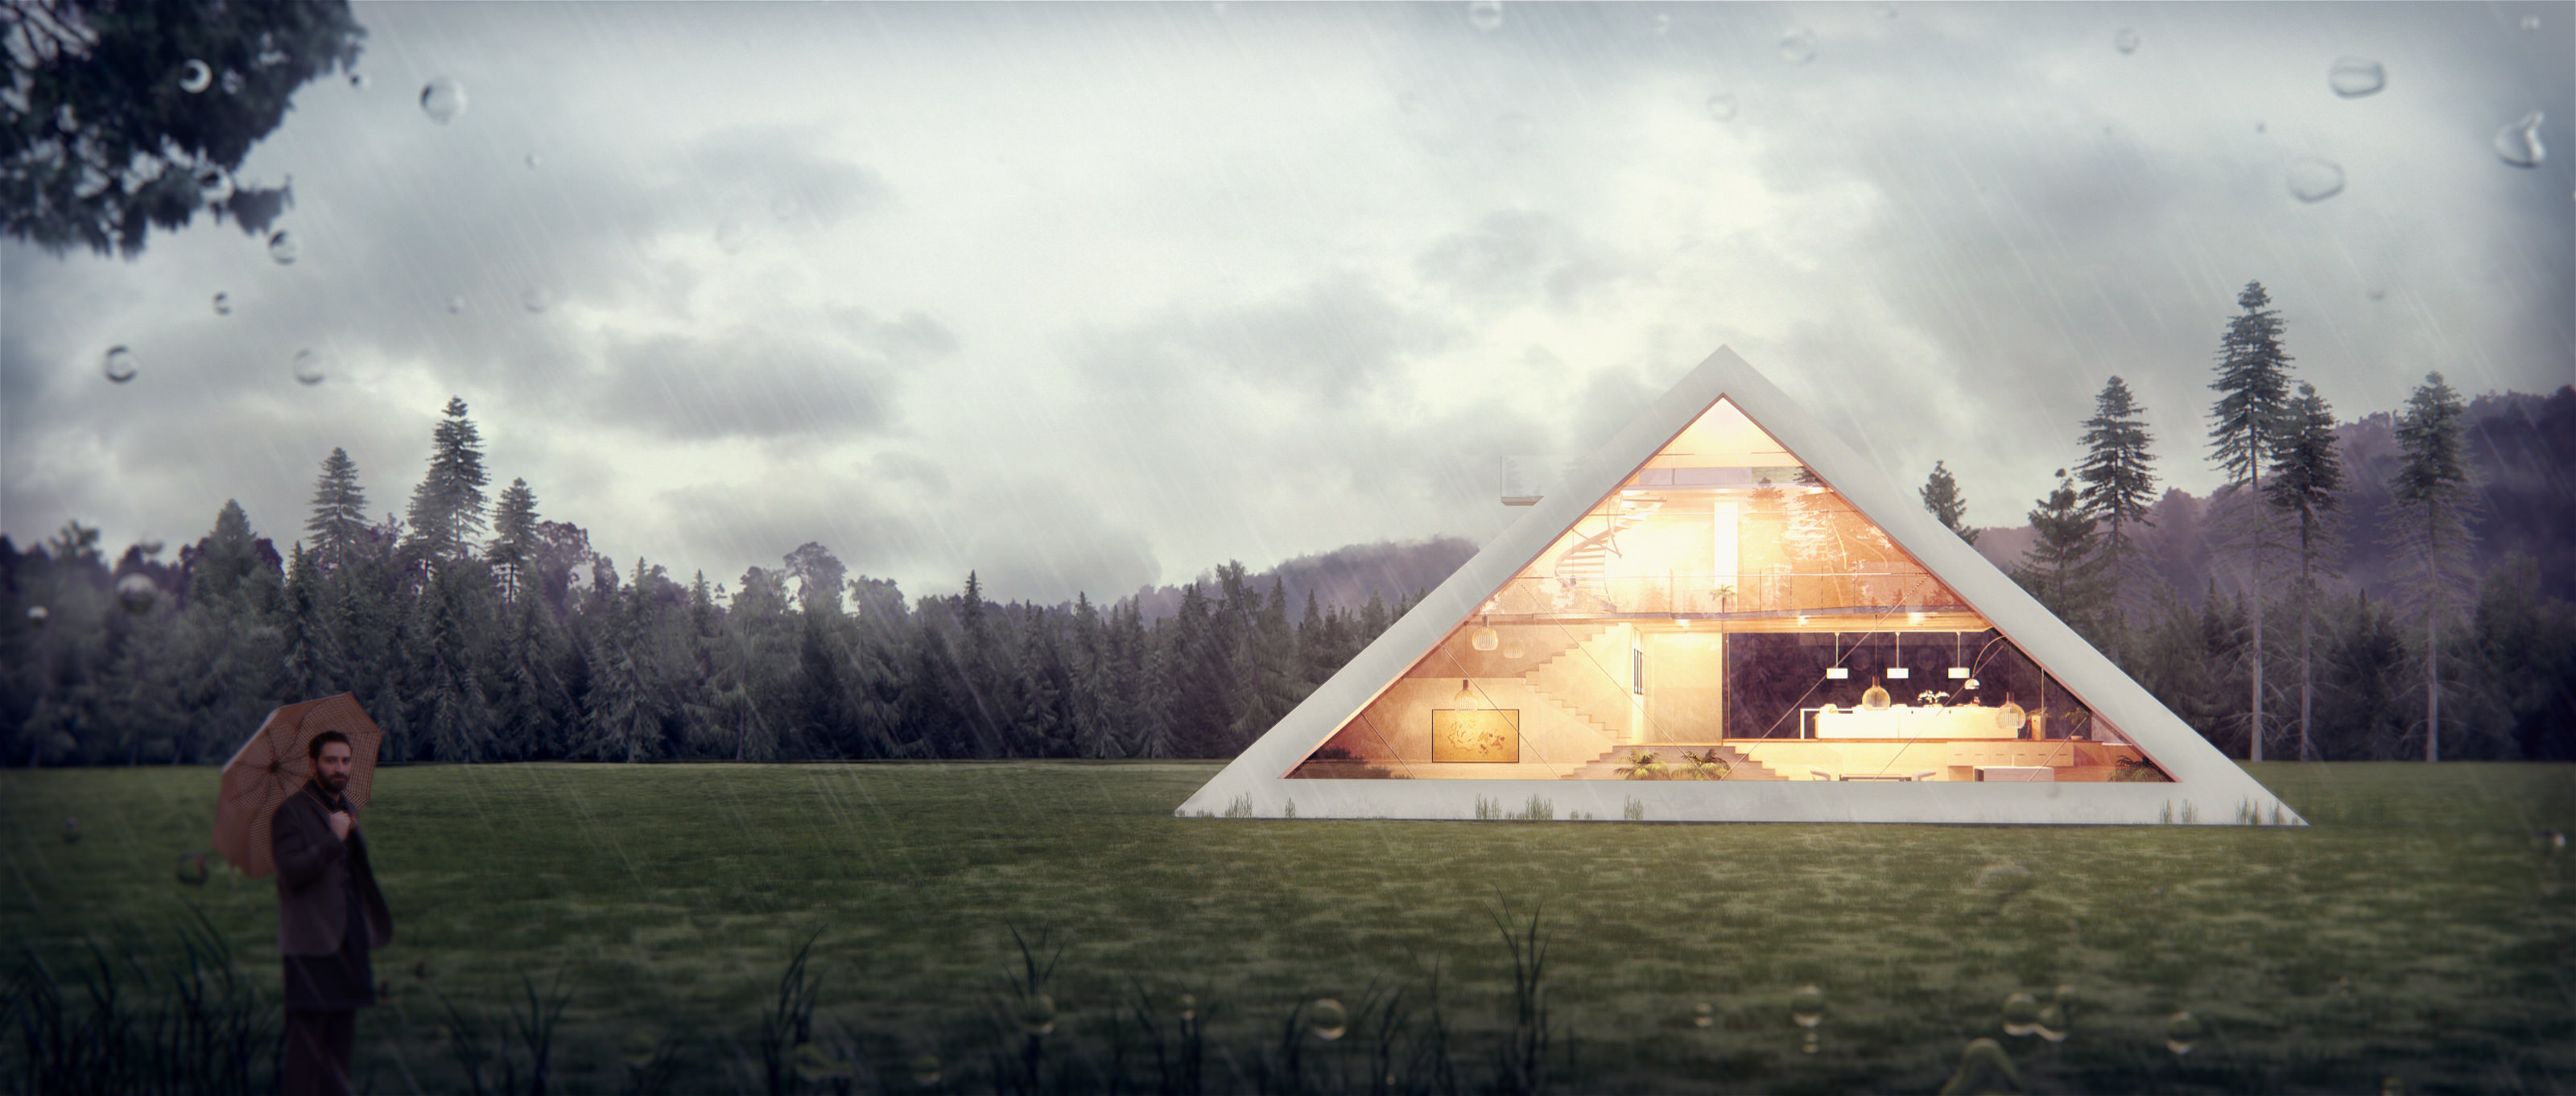 Pyramid House An Architectral Visualization By Juan